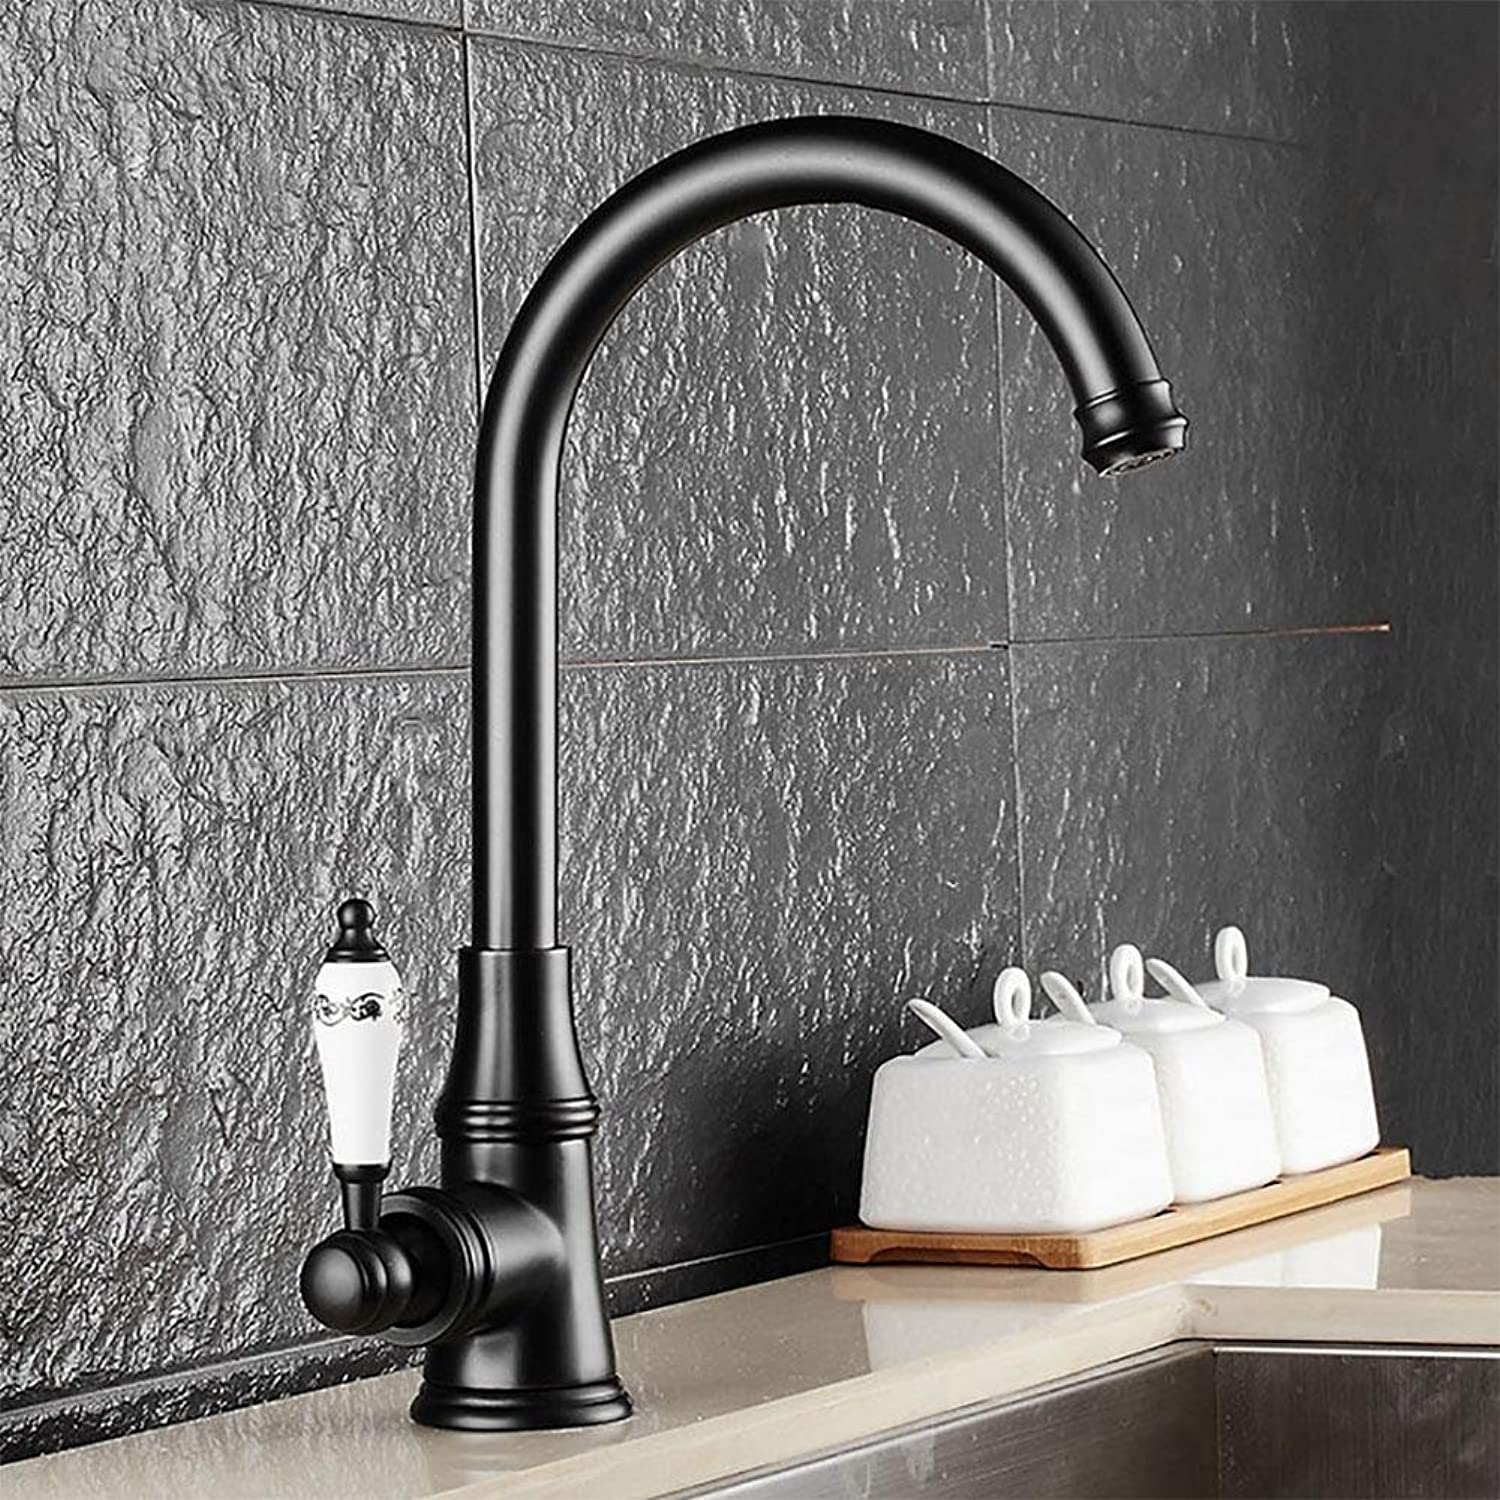 QW Antique hot and cold kitchen sink faucet bluee and white porcelain handle redating faucet , black